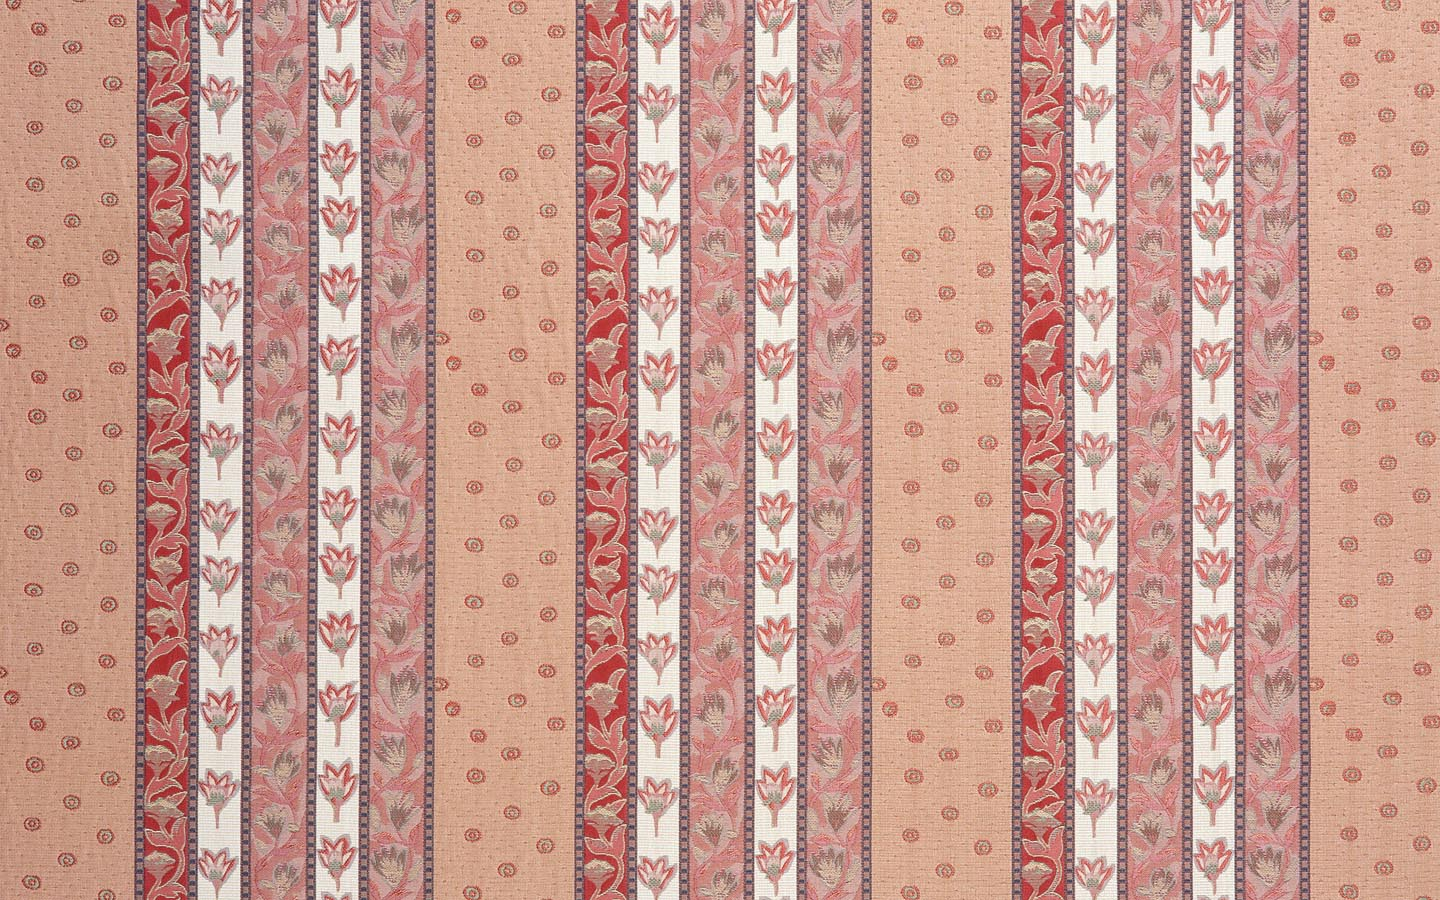 Fabric texture 13655